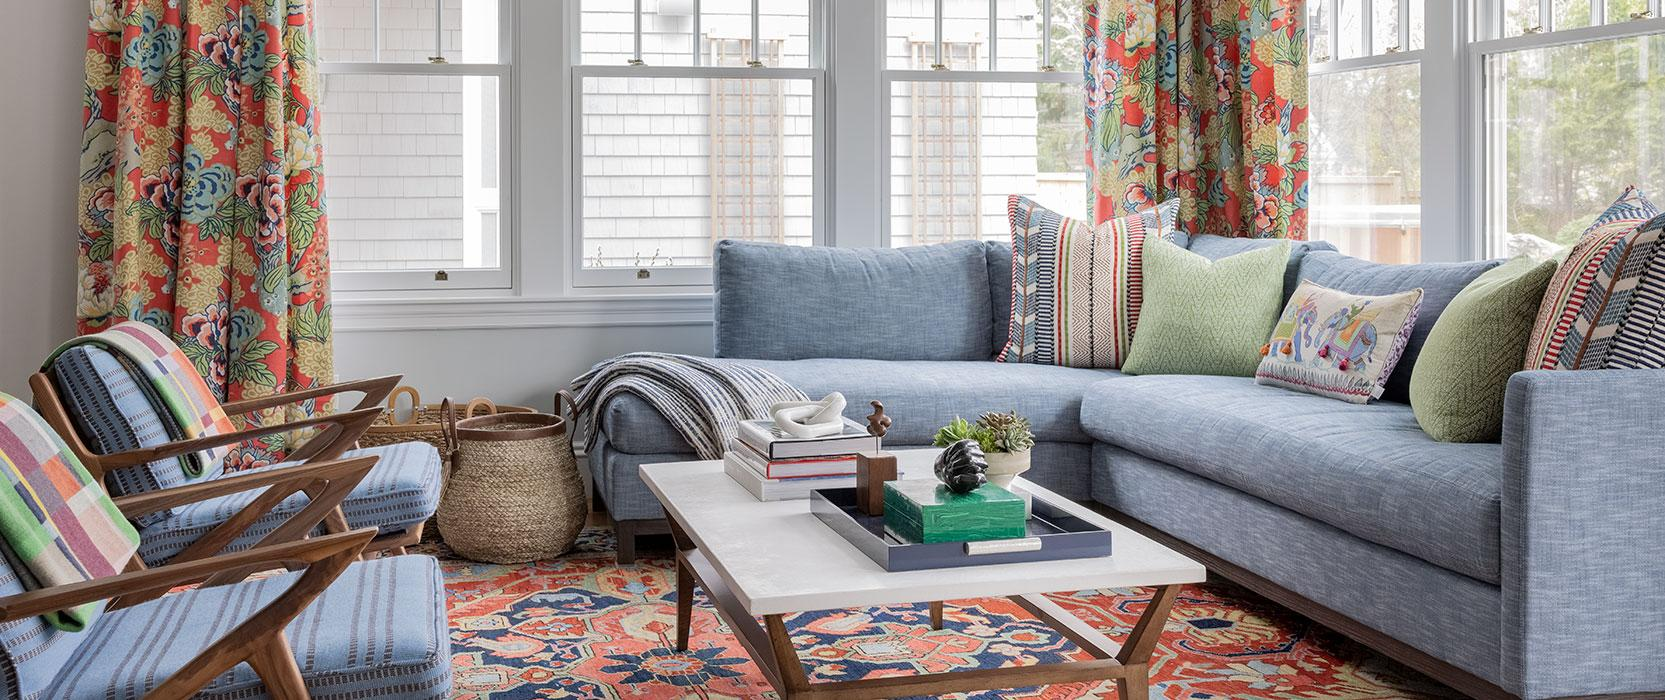 living room with light blue sofas and colorful curtains